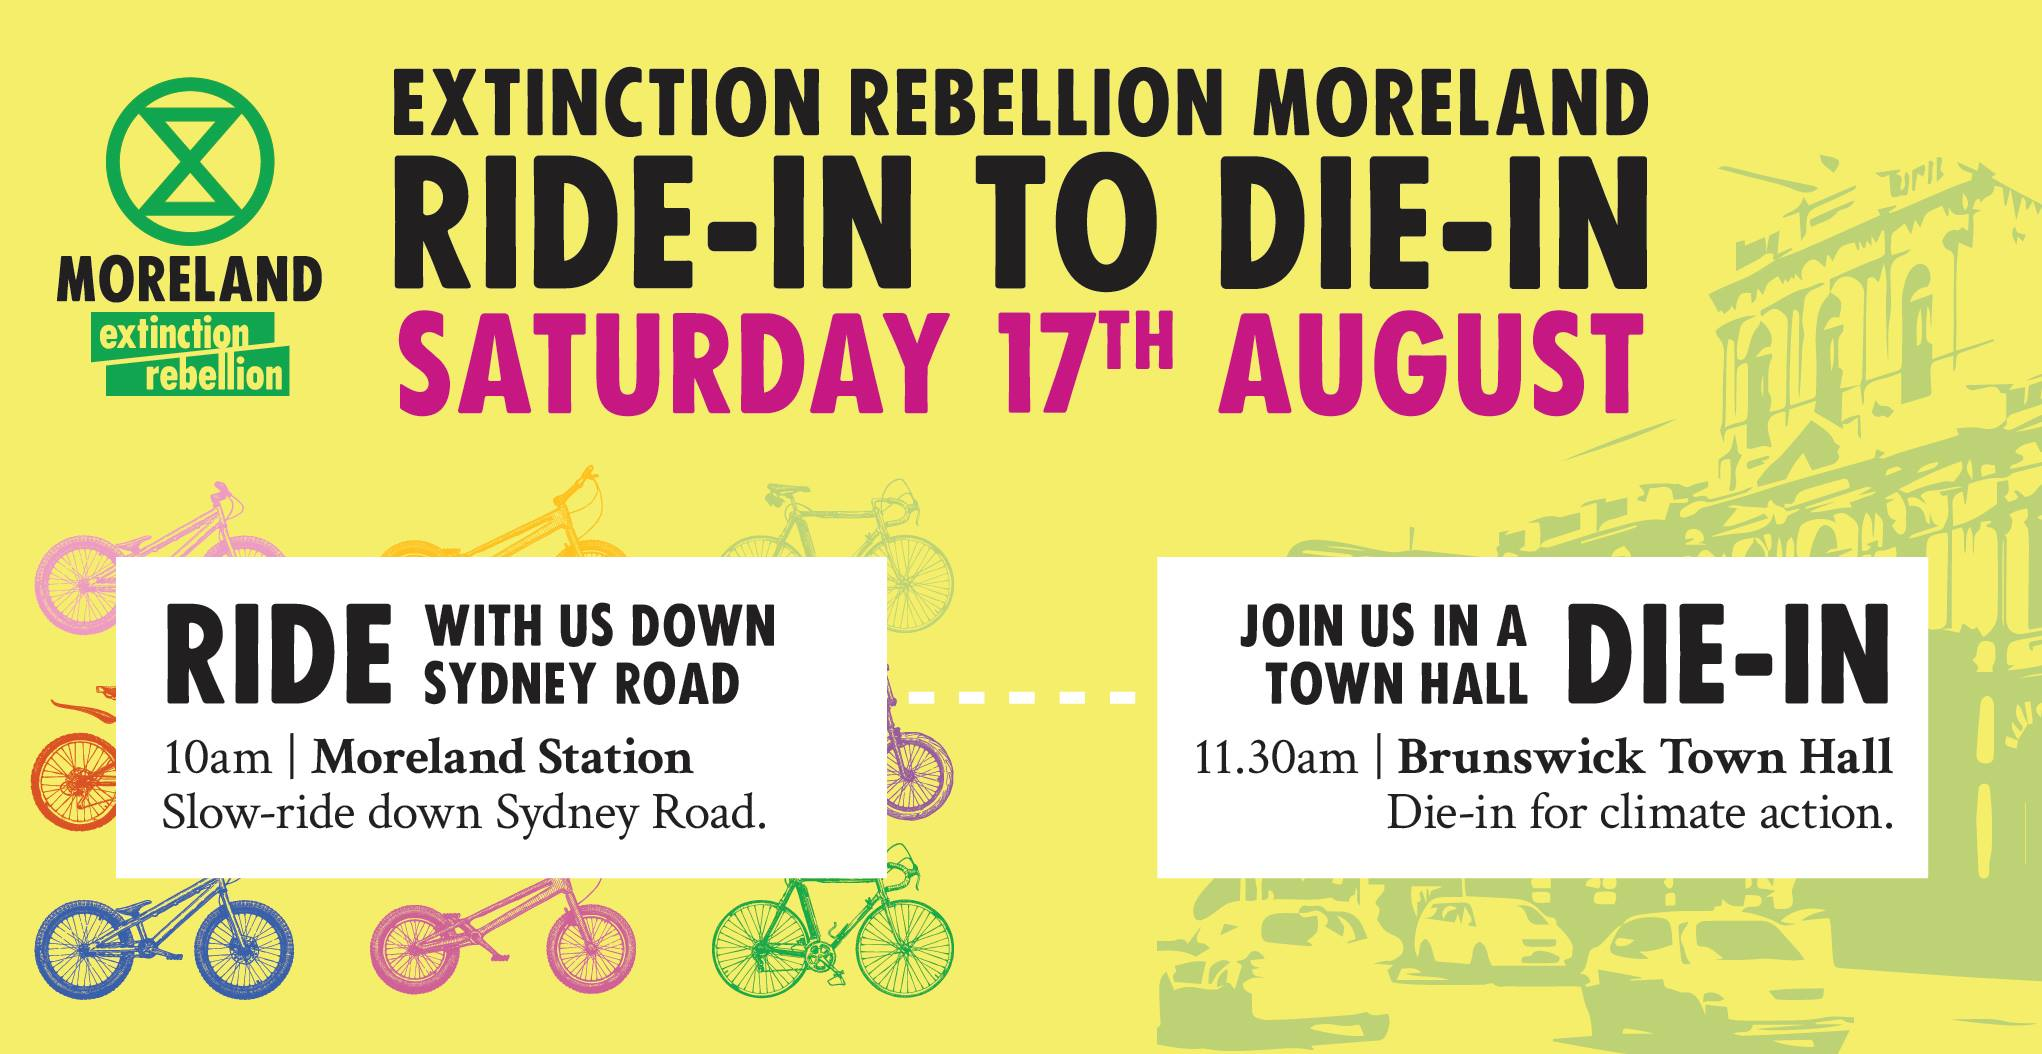 Extinction Rebellion Moreland: Ride In to Die in